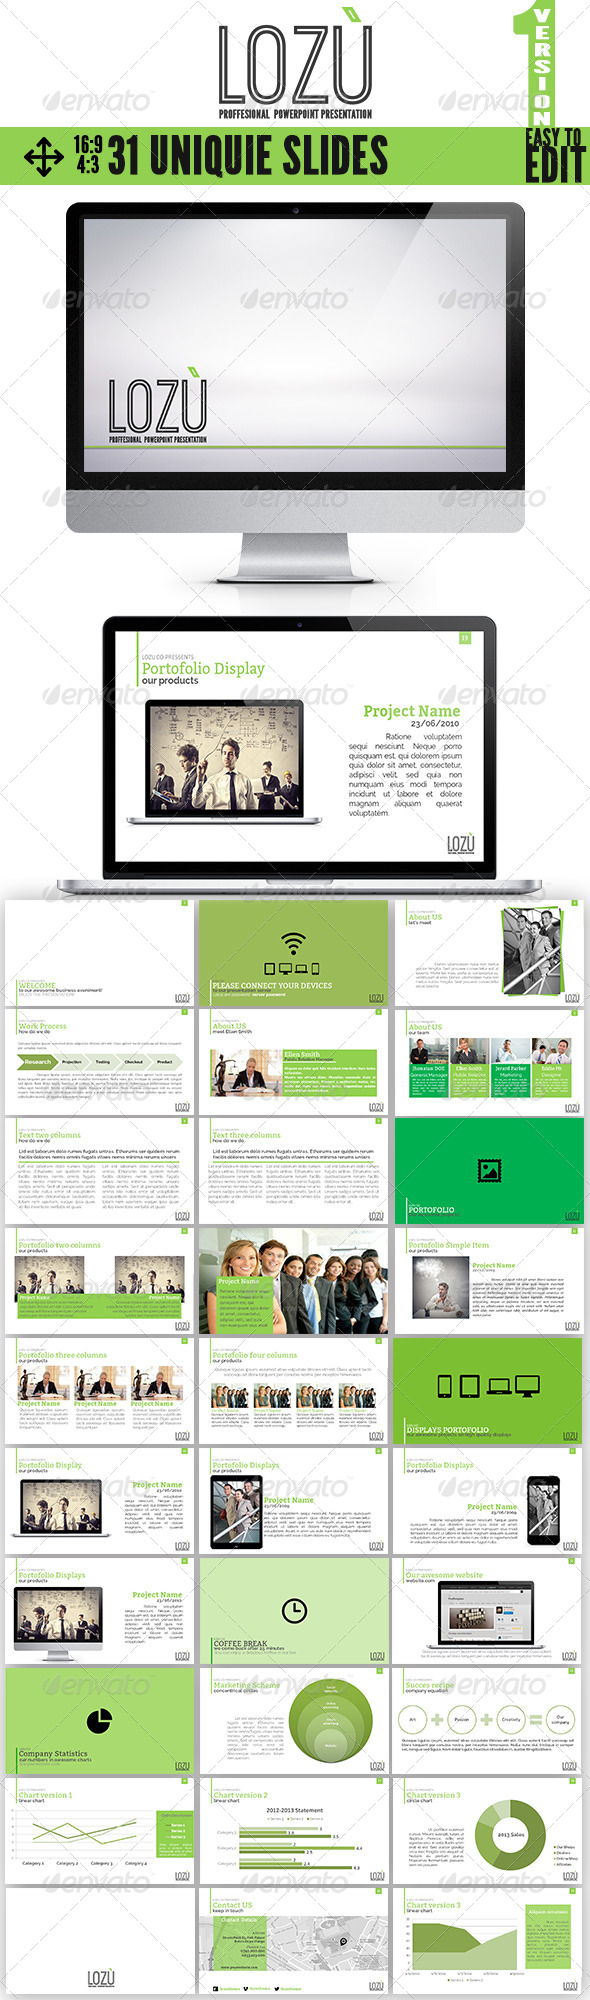 GraphicRiver Lozu Multiproposal PowerPoint Theme 6753830